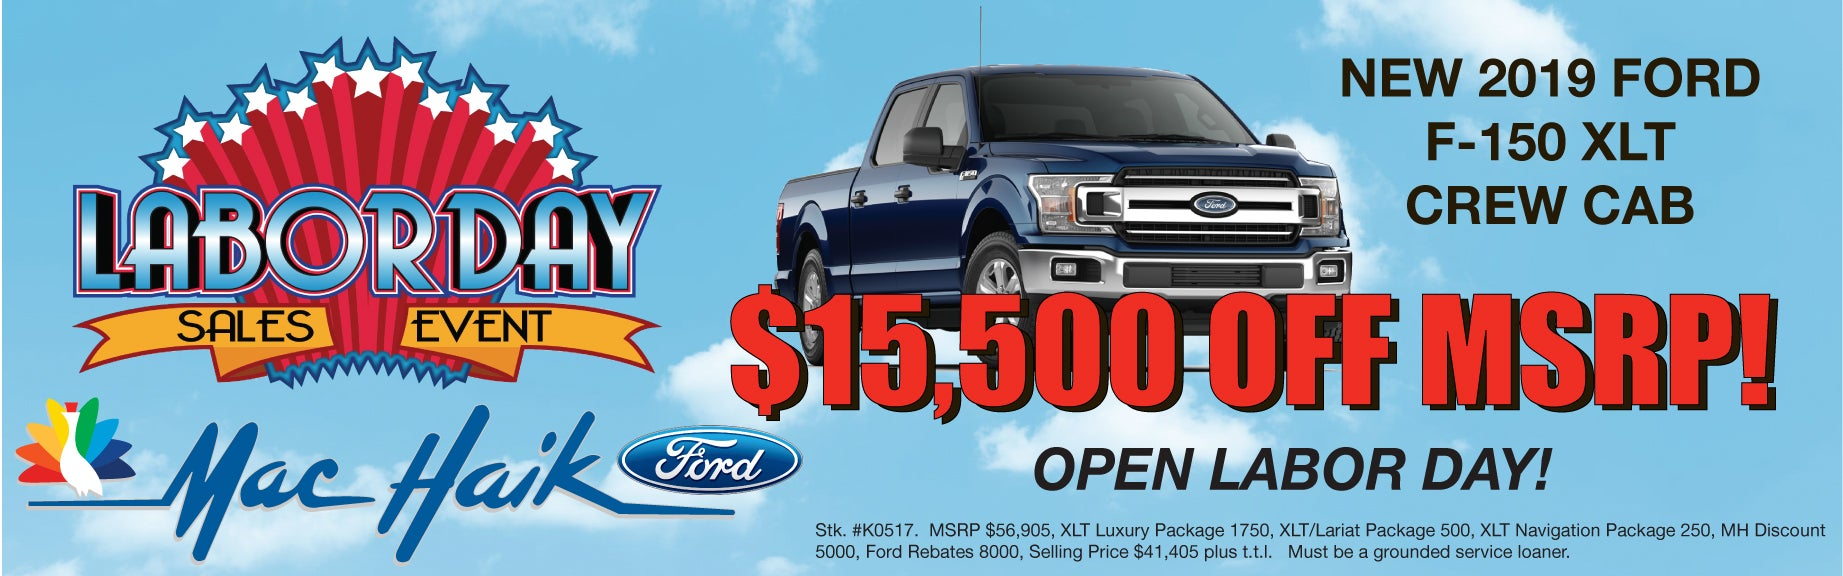 Ford Dealership Houston >> Ford Dealer In Houston Tx Used Cars Houston Mac Haik Ford